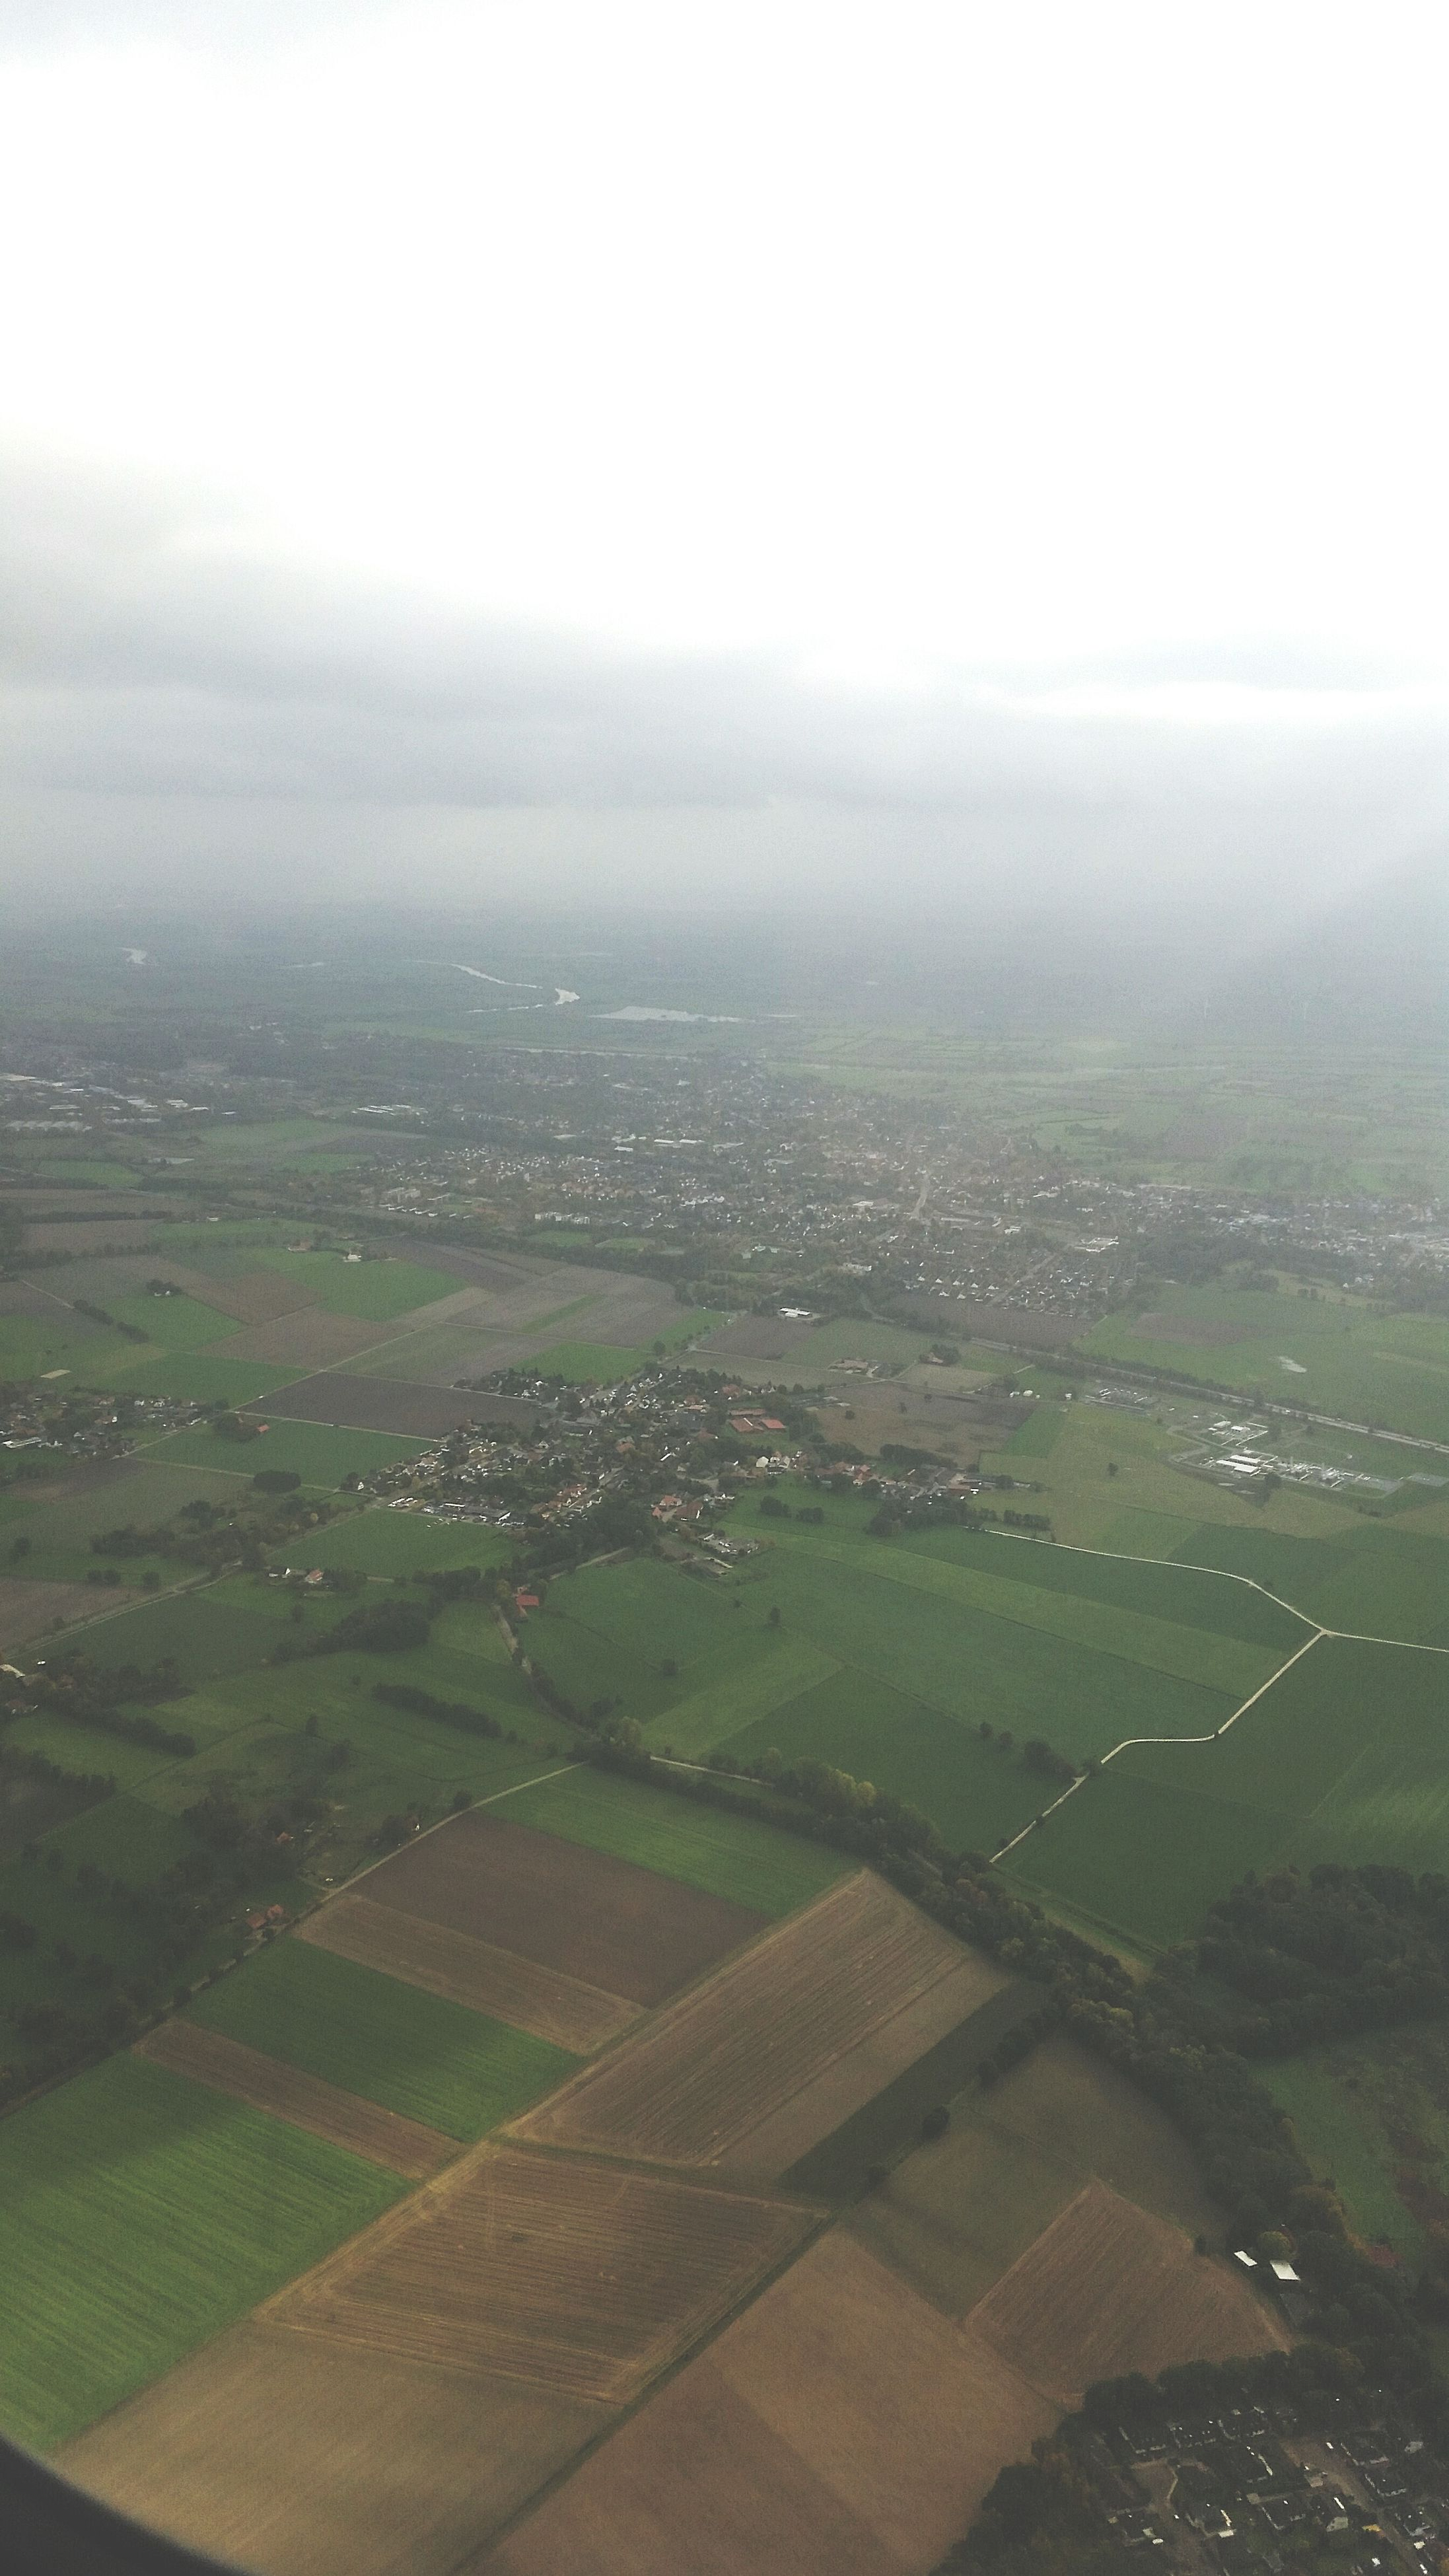 landscape, fog, aerial view, foggy, scenics, field, beauty in nature, nature, tranquility, tranquil scene, high angle view, green color, sky, day, weather, no people, built structure, outdoors, rural scene